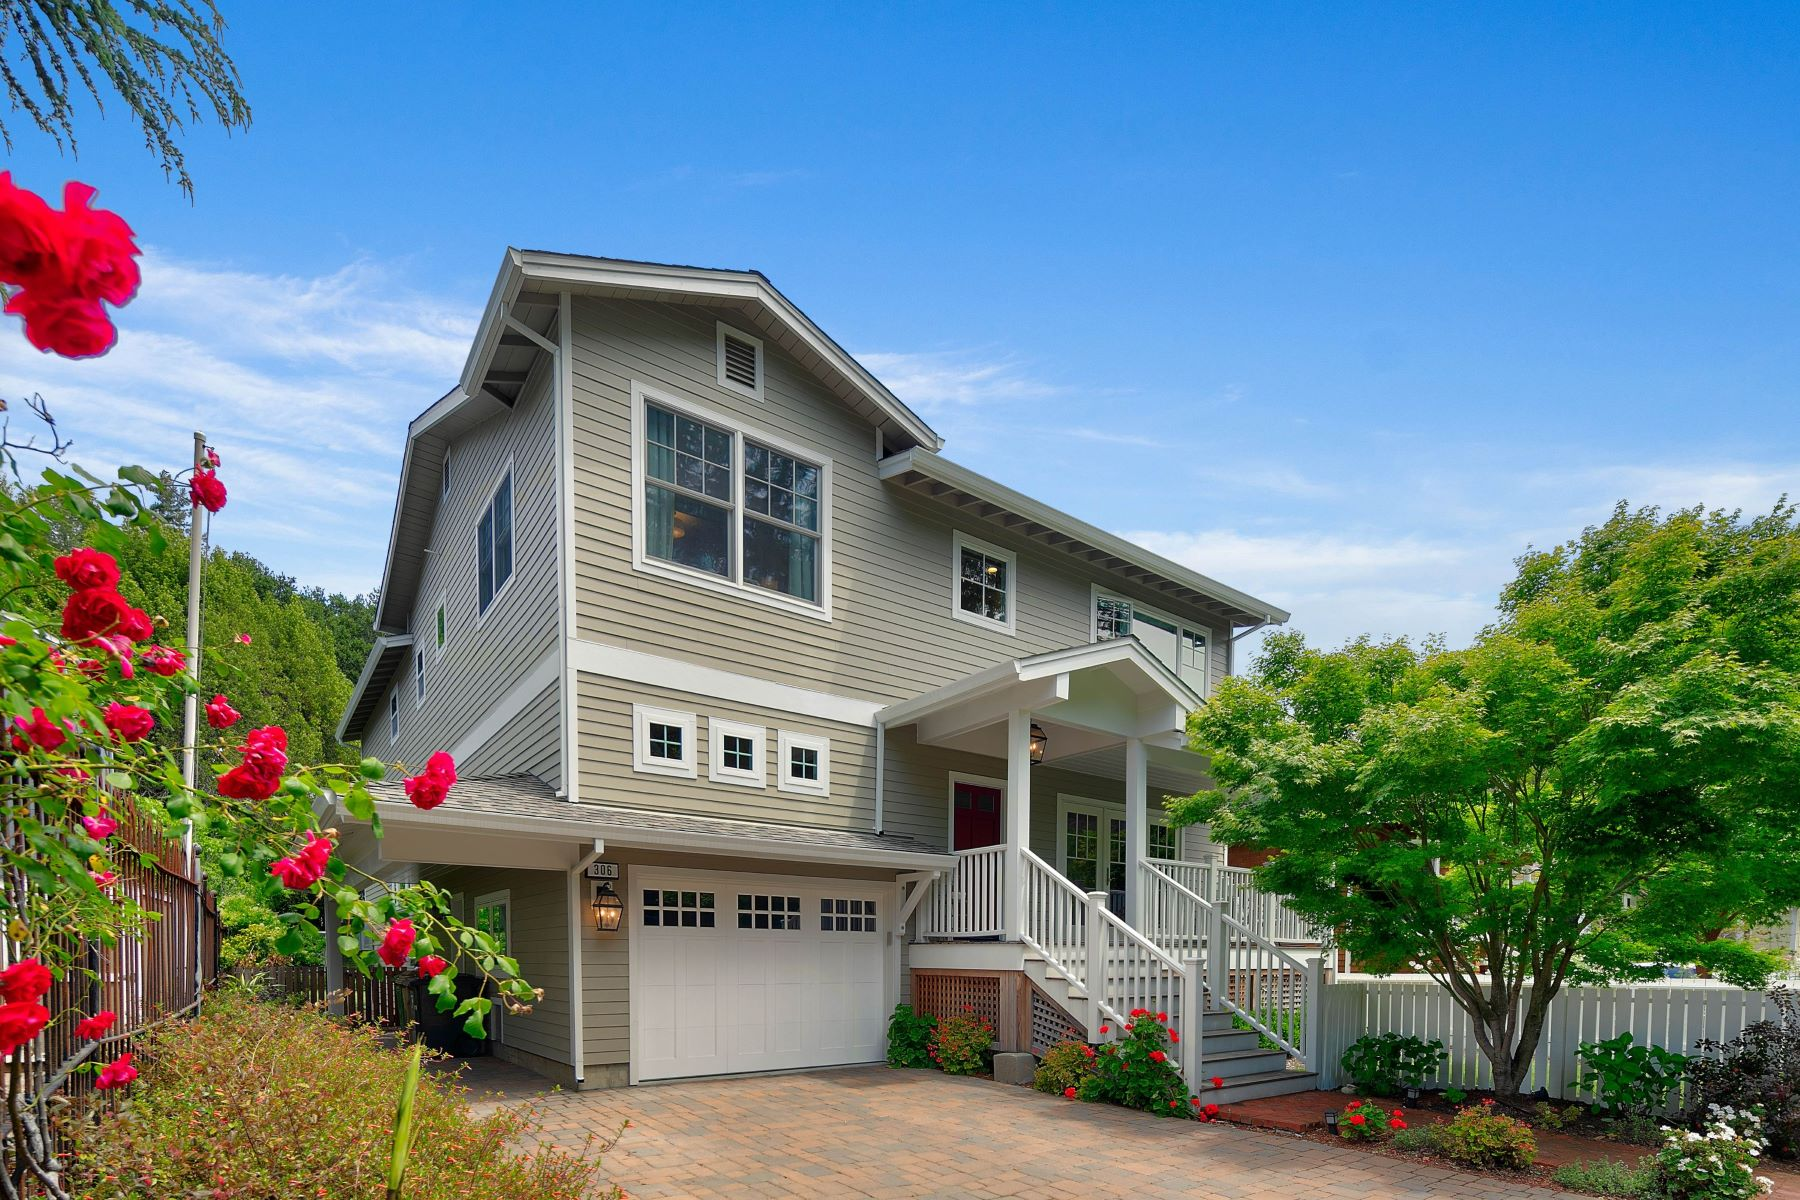 Single Family Homes for Active at Newly Renovated Family Home in the Coveted Flats of Kentfield 306 Kent Avenue Kentfield, California 94904 United States